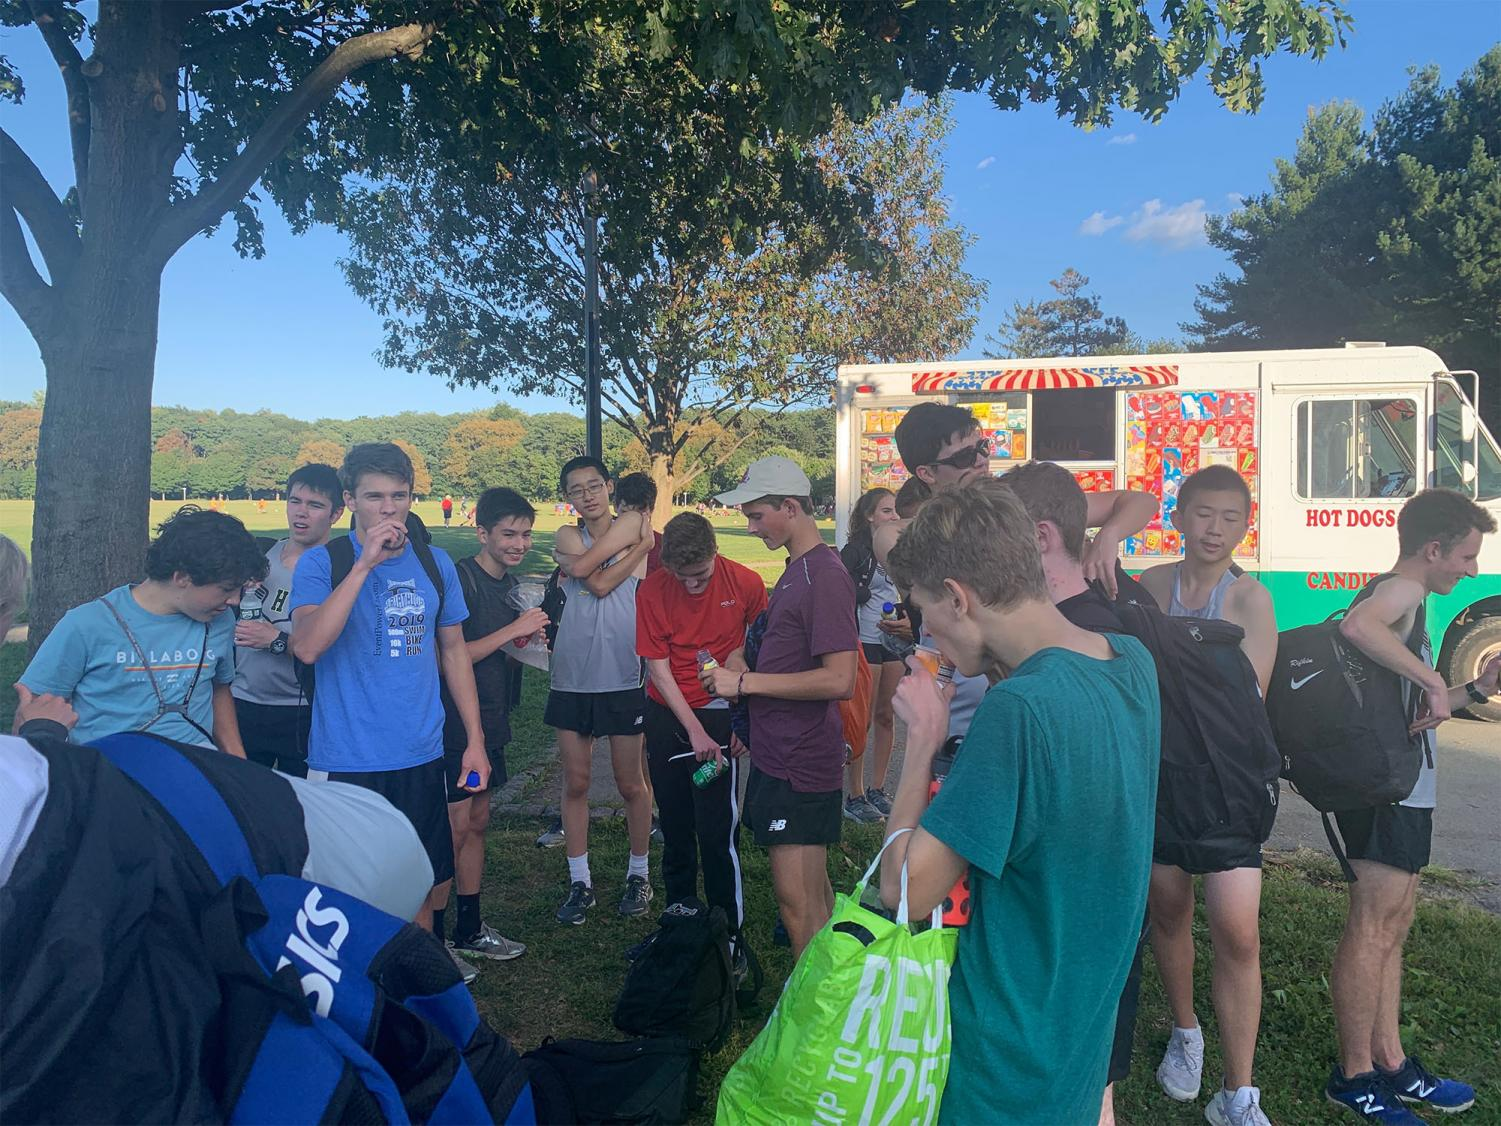 The boys Cross Country team enjoys post-race drinks and snacks as a group.